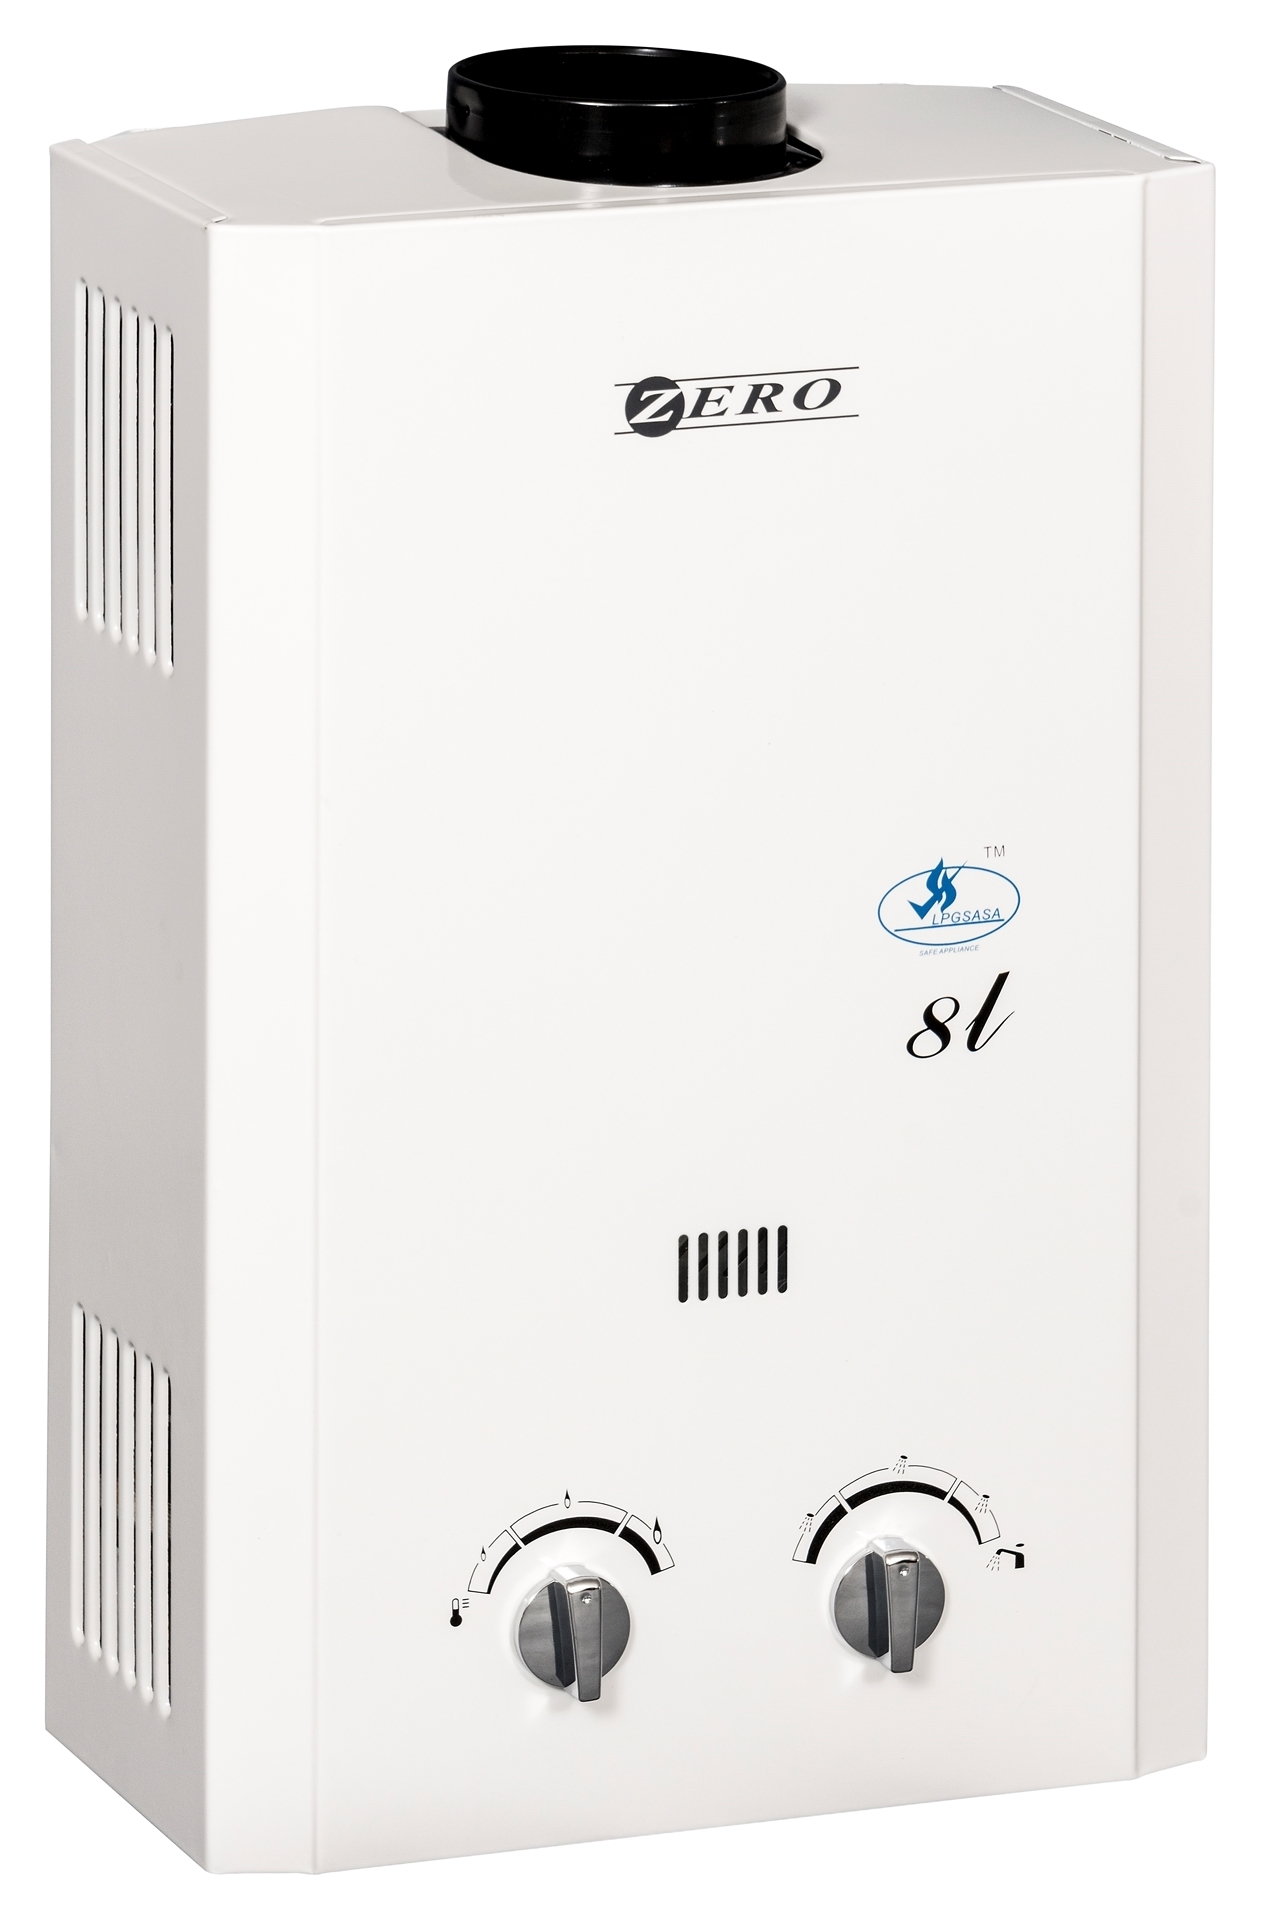 zero-8l-gas-water-heater-geyser